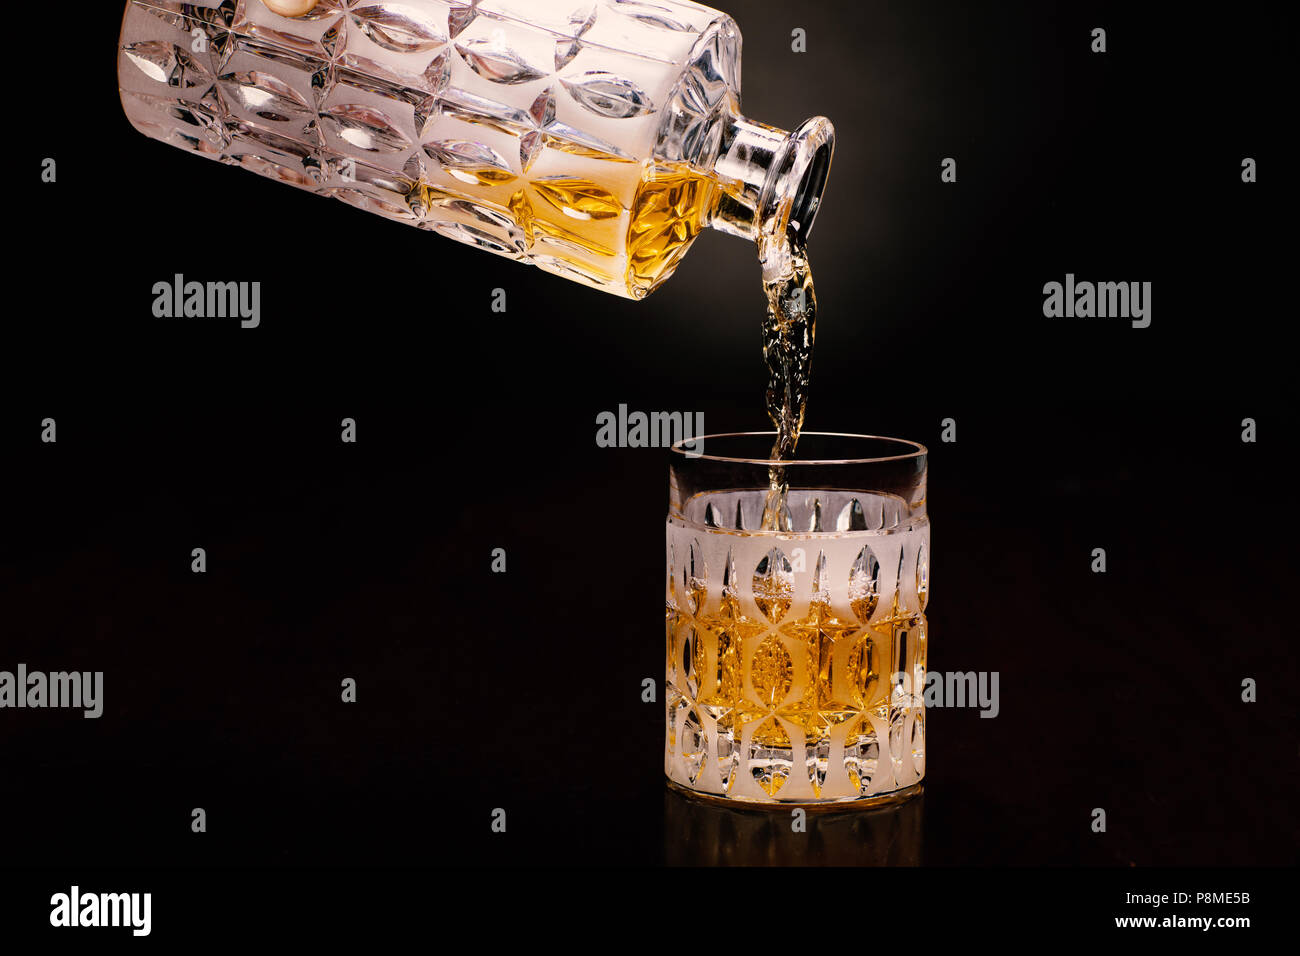 Whisky Whiskey, bottiglia, Handmodel Foto Stock